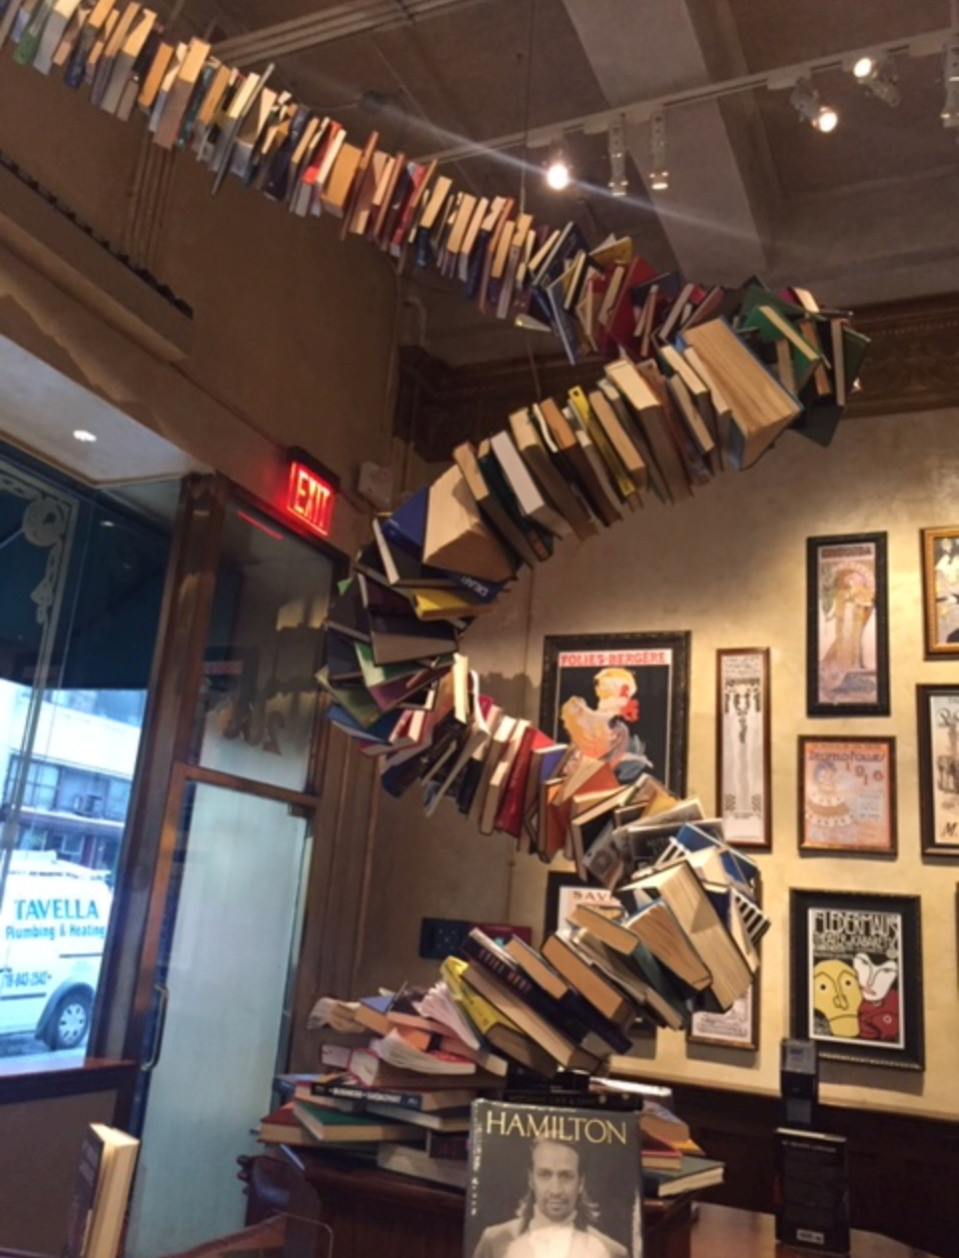 The Drama Book Shop's interior, a worm-shaped literary sculpture, is a dazzling homage to theater